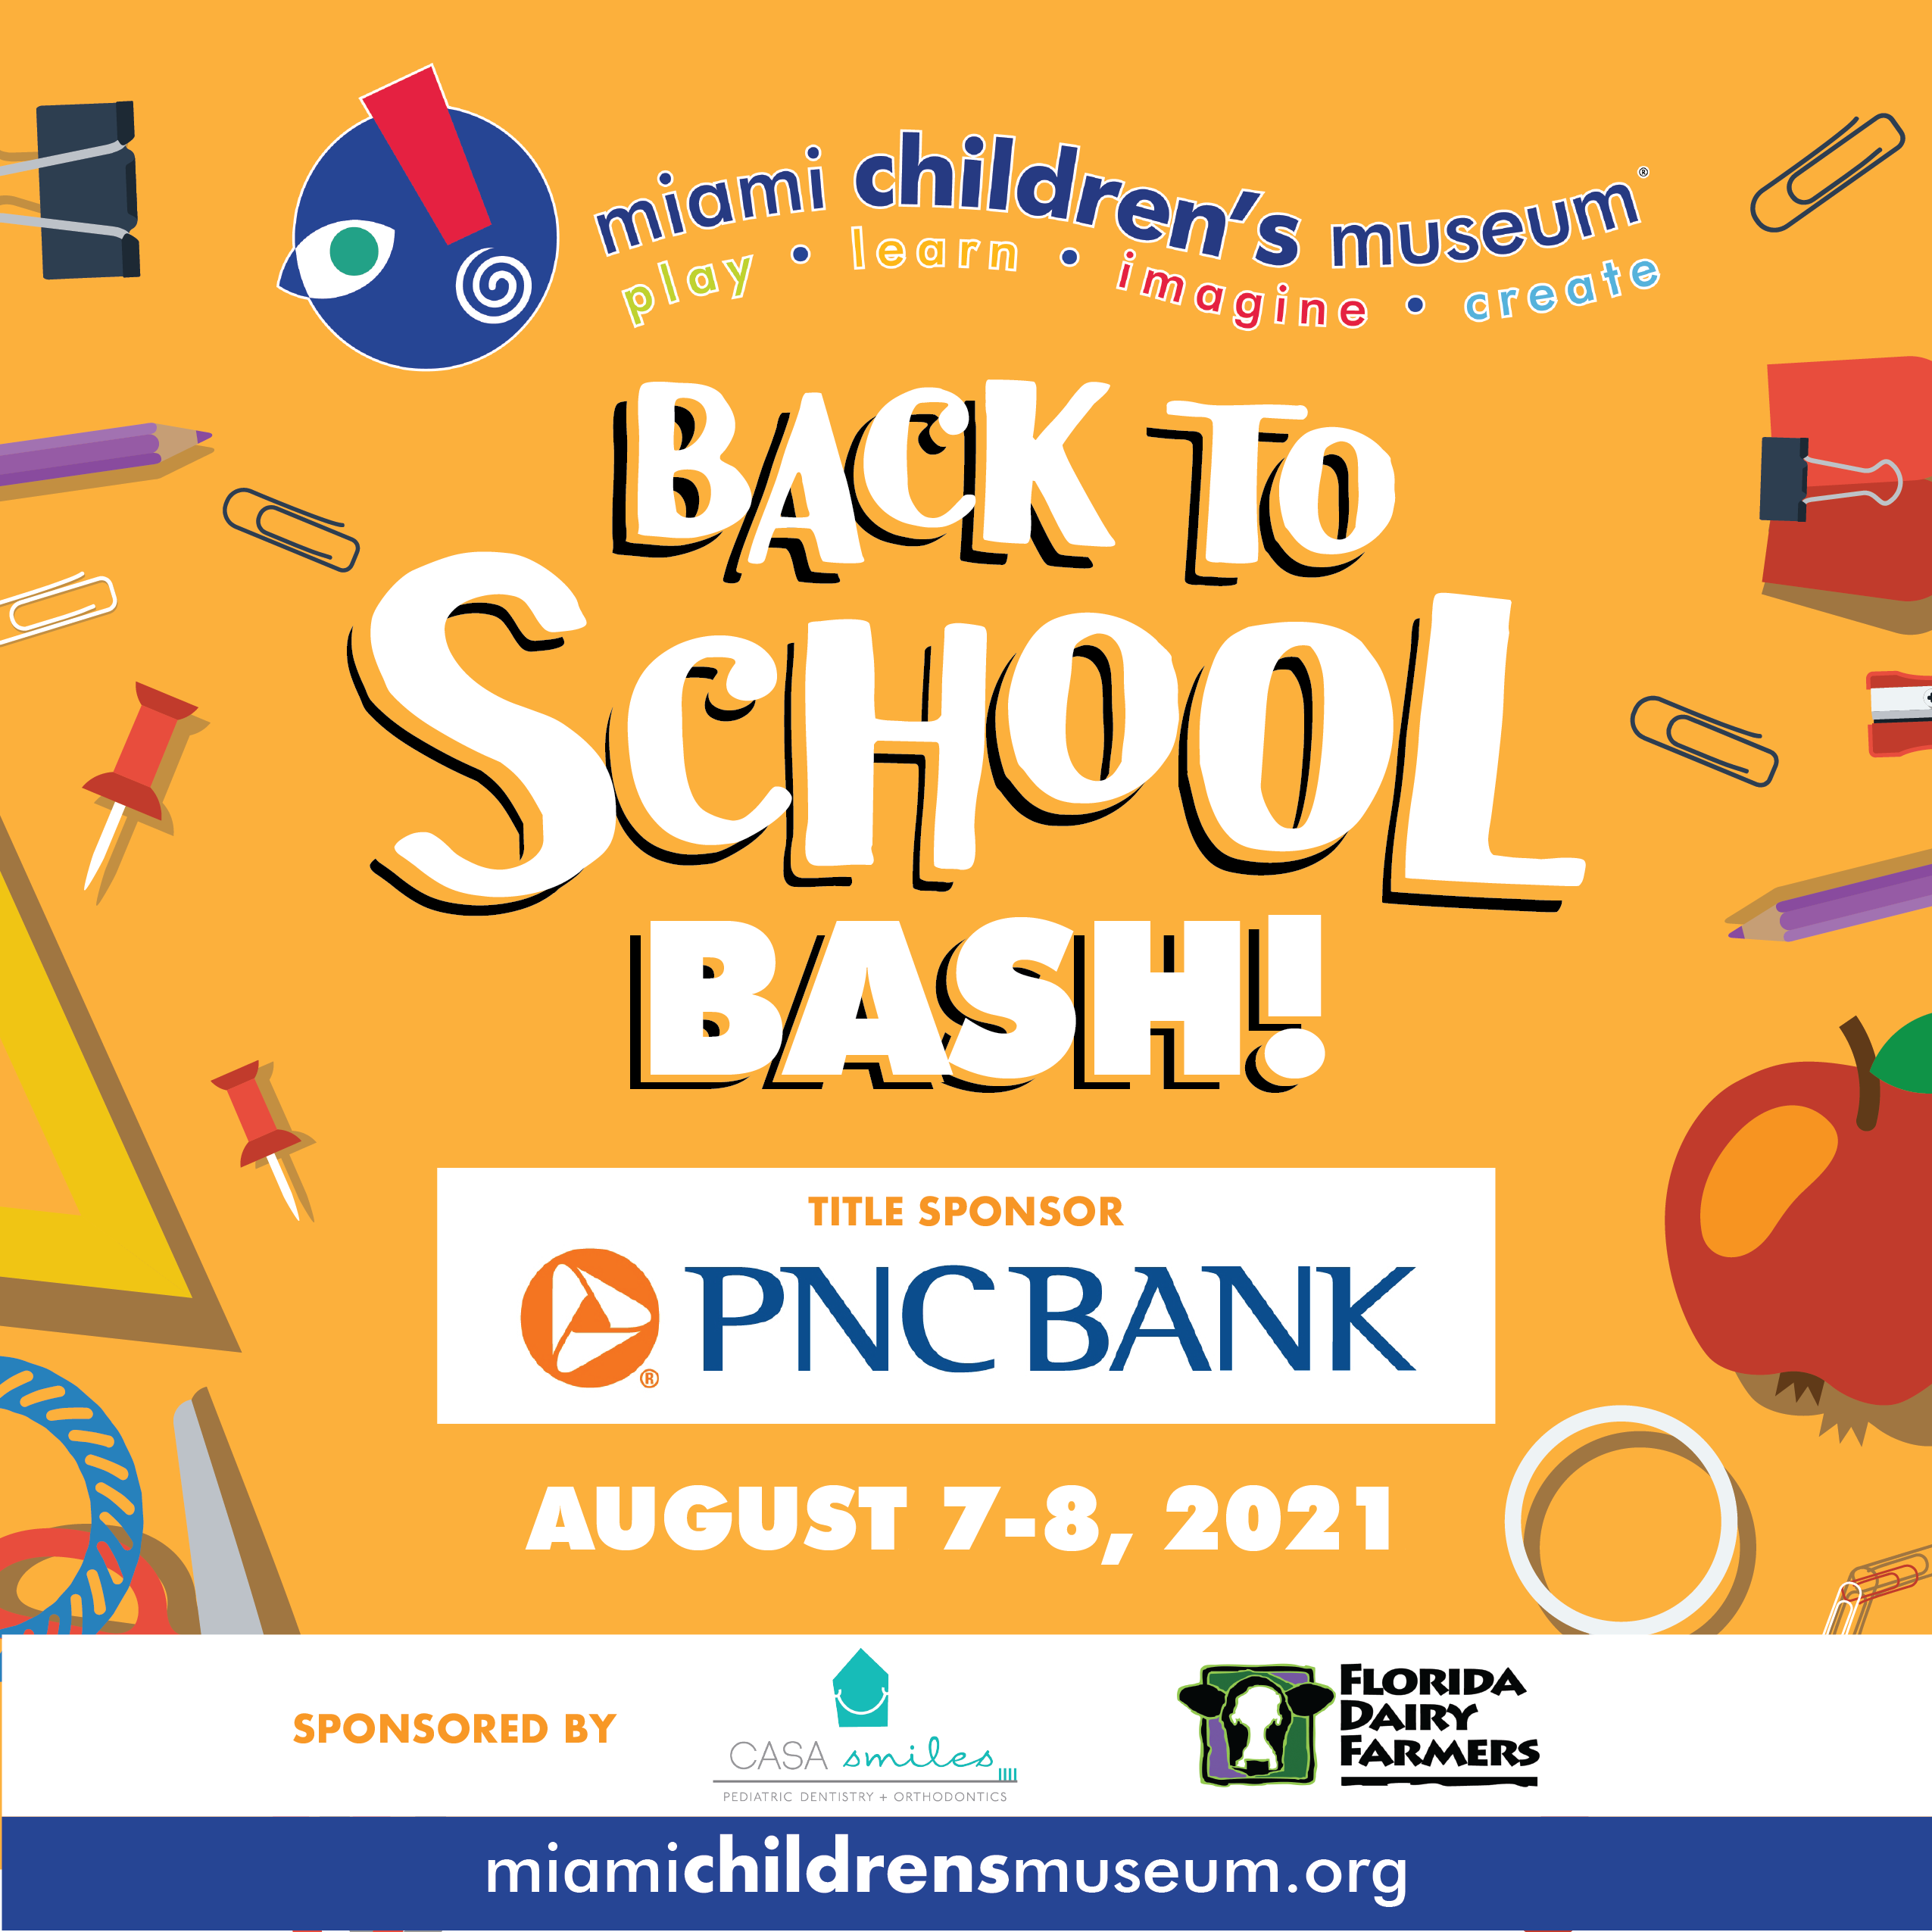 AUGUST 7-8, 2021: GET READY FOR THE CLASSROOM AGAIN AT MIAMI CHILDREN'S MUSEUM'S BACK TO SCHOOL BASH Sponsored by PNC BANK